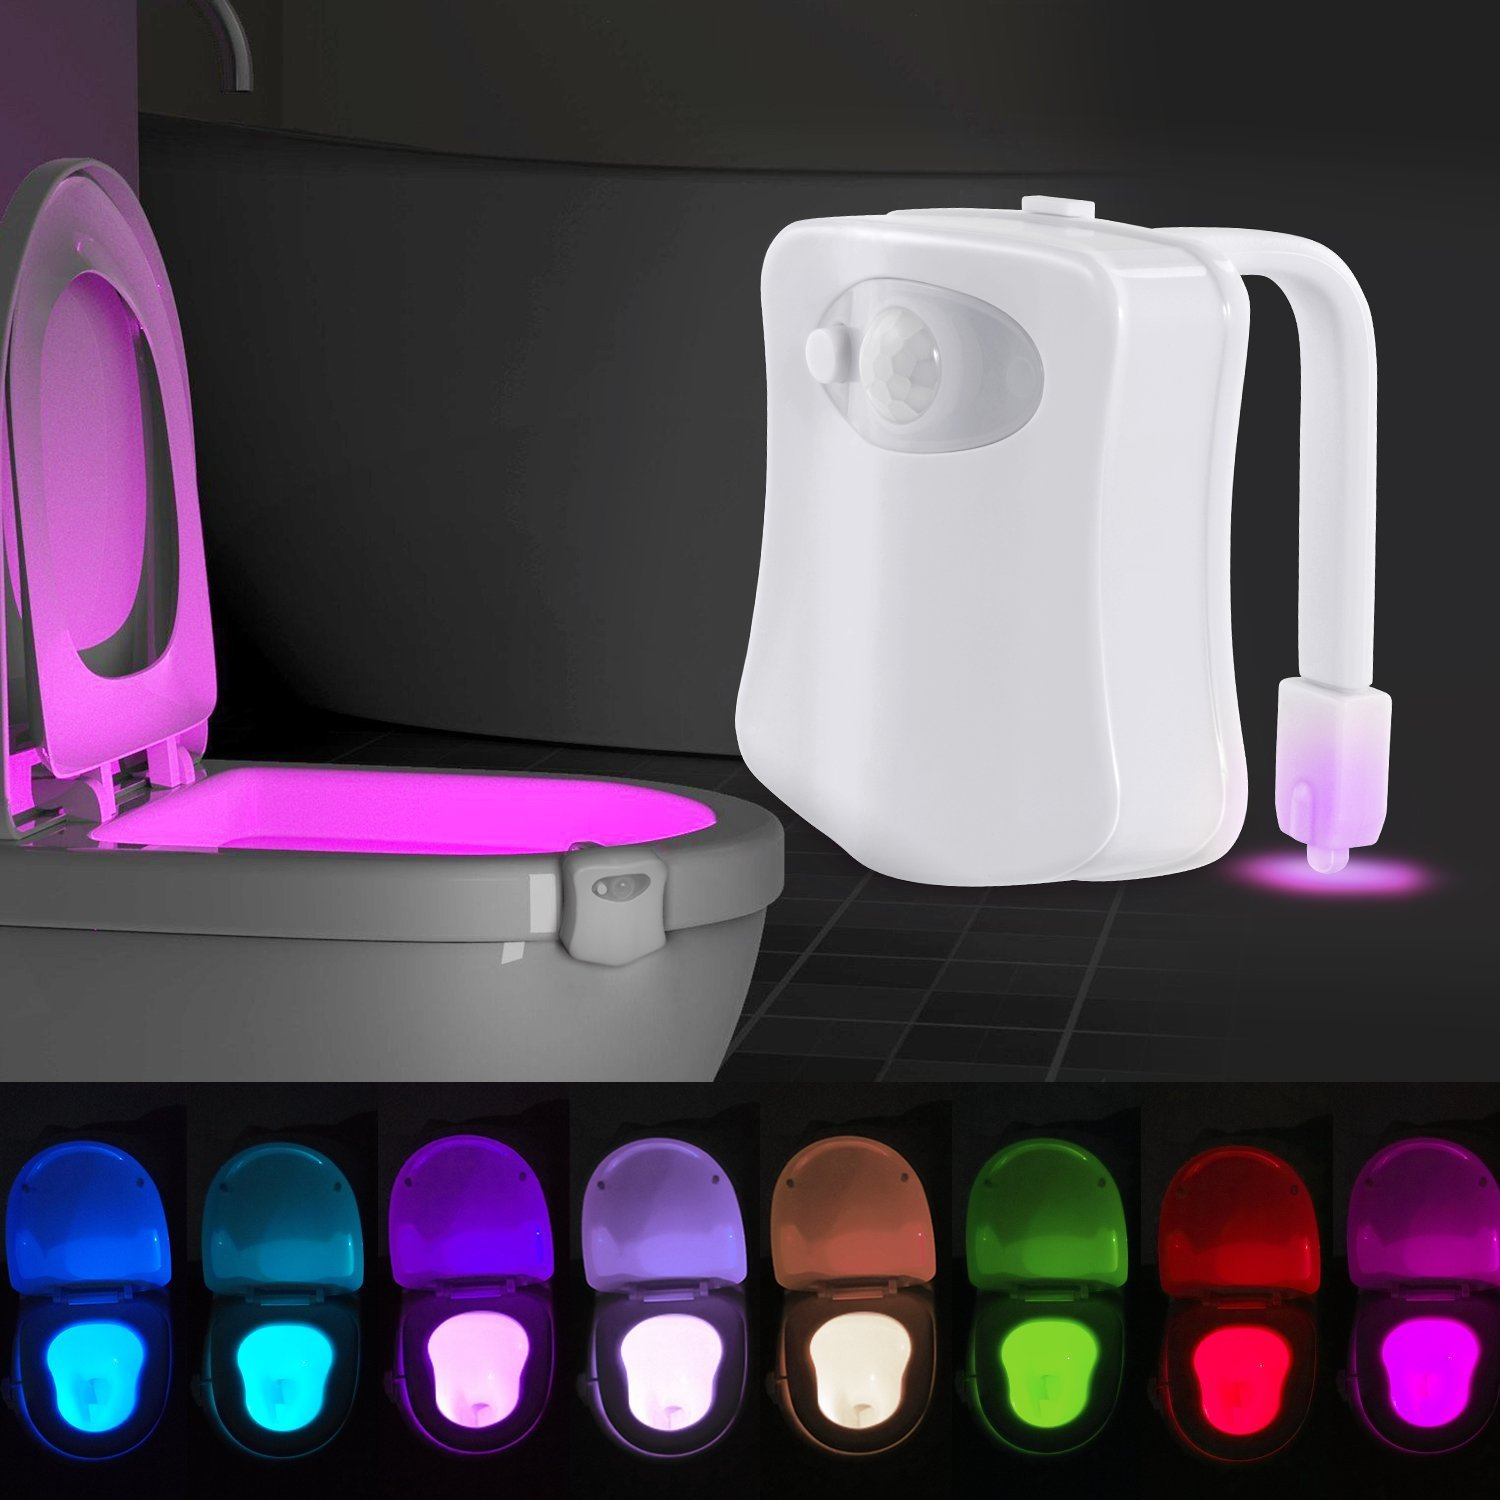 Awe Inspiring Us 3 17 Sensor Toilet Bowl Lamp Toilet Seat Led Night Light Motion 8 Colors Smart Auto Activated Cuvette Wc Bathroom Accessories 1Pc In Toilet Seat Lamtechconsult Wood Chair Design Ideas Lamtechconsultcom